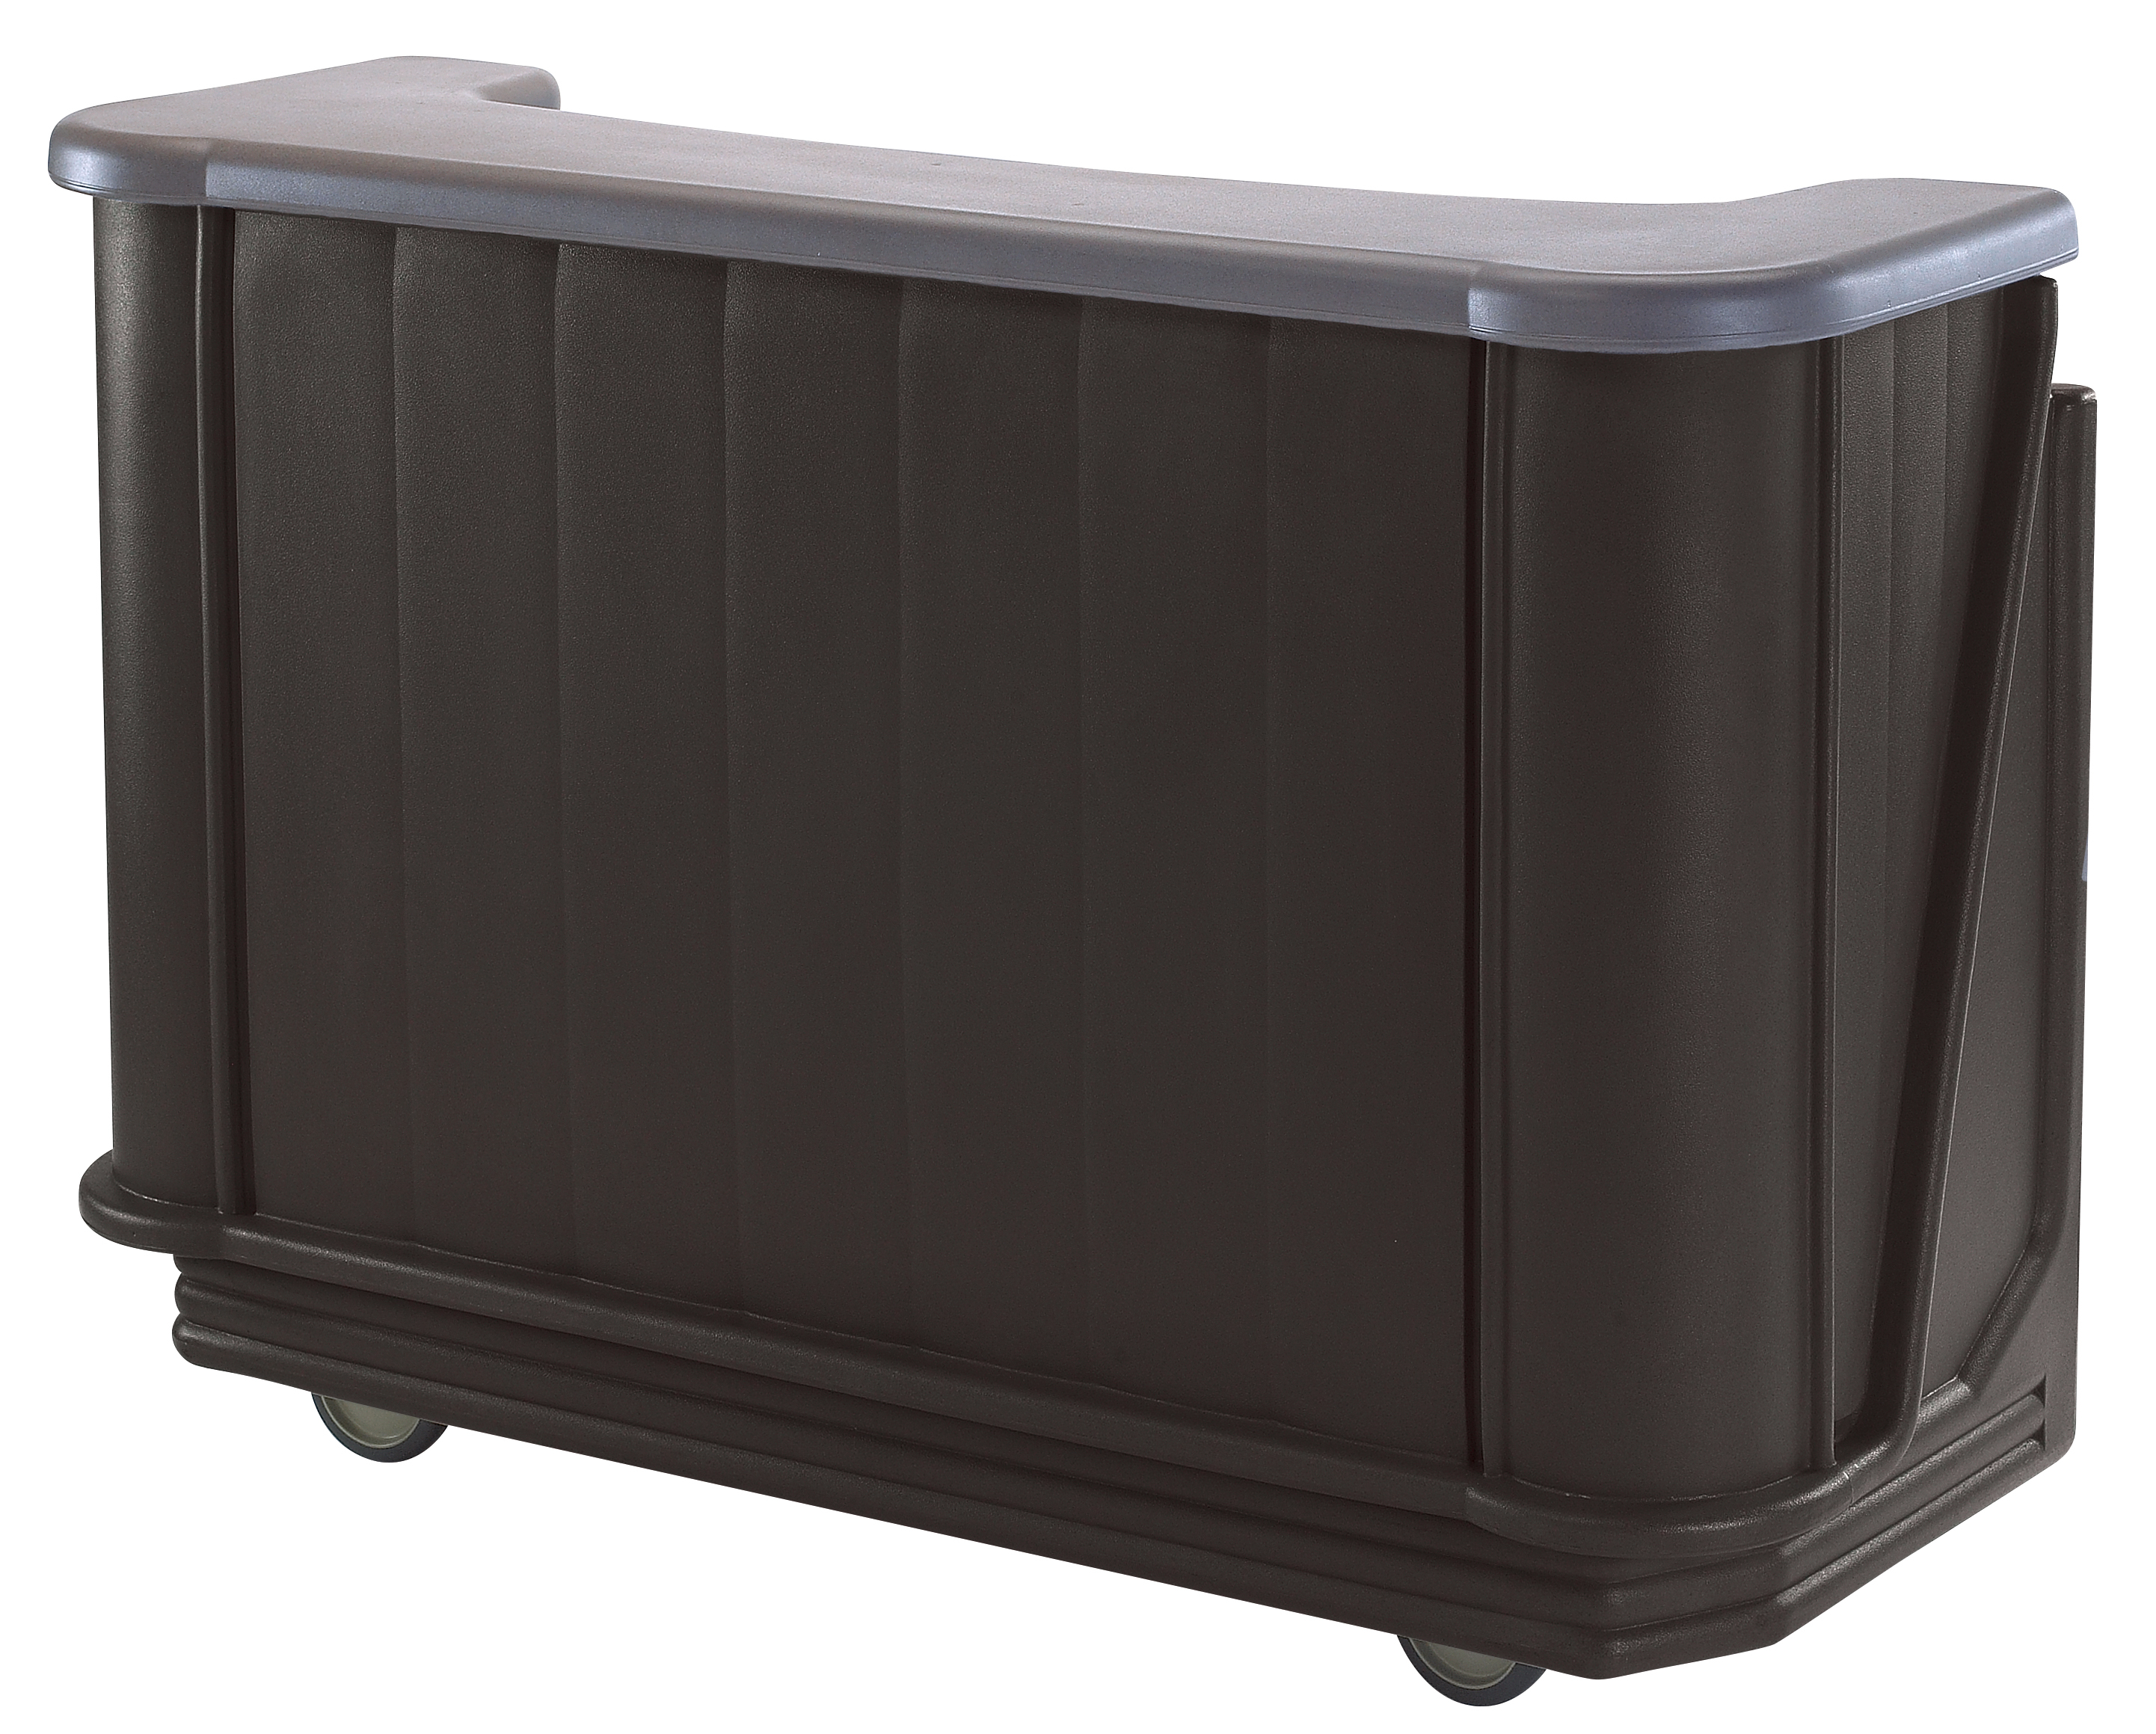 Cambro BAR650PMT220420 portable bar